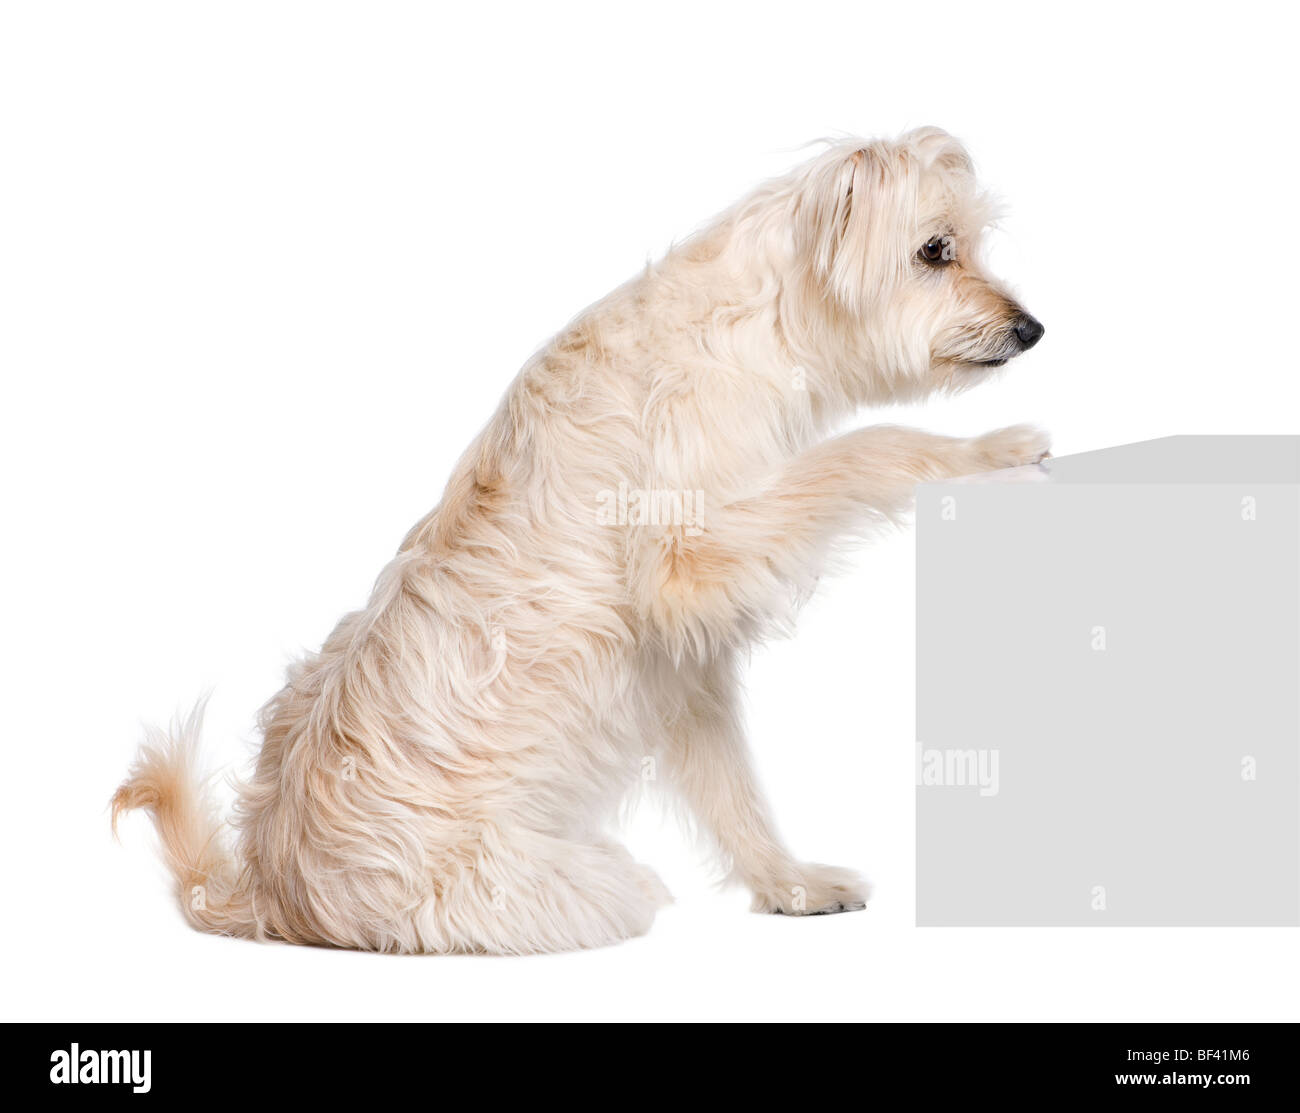 Pyrenean Shepherd, 2 years old, sitting near pedestal in front of white background, studio shot - Stock Image